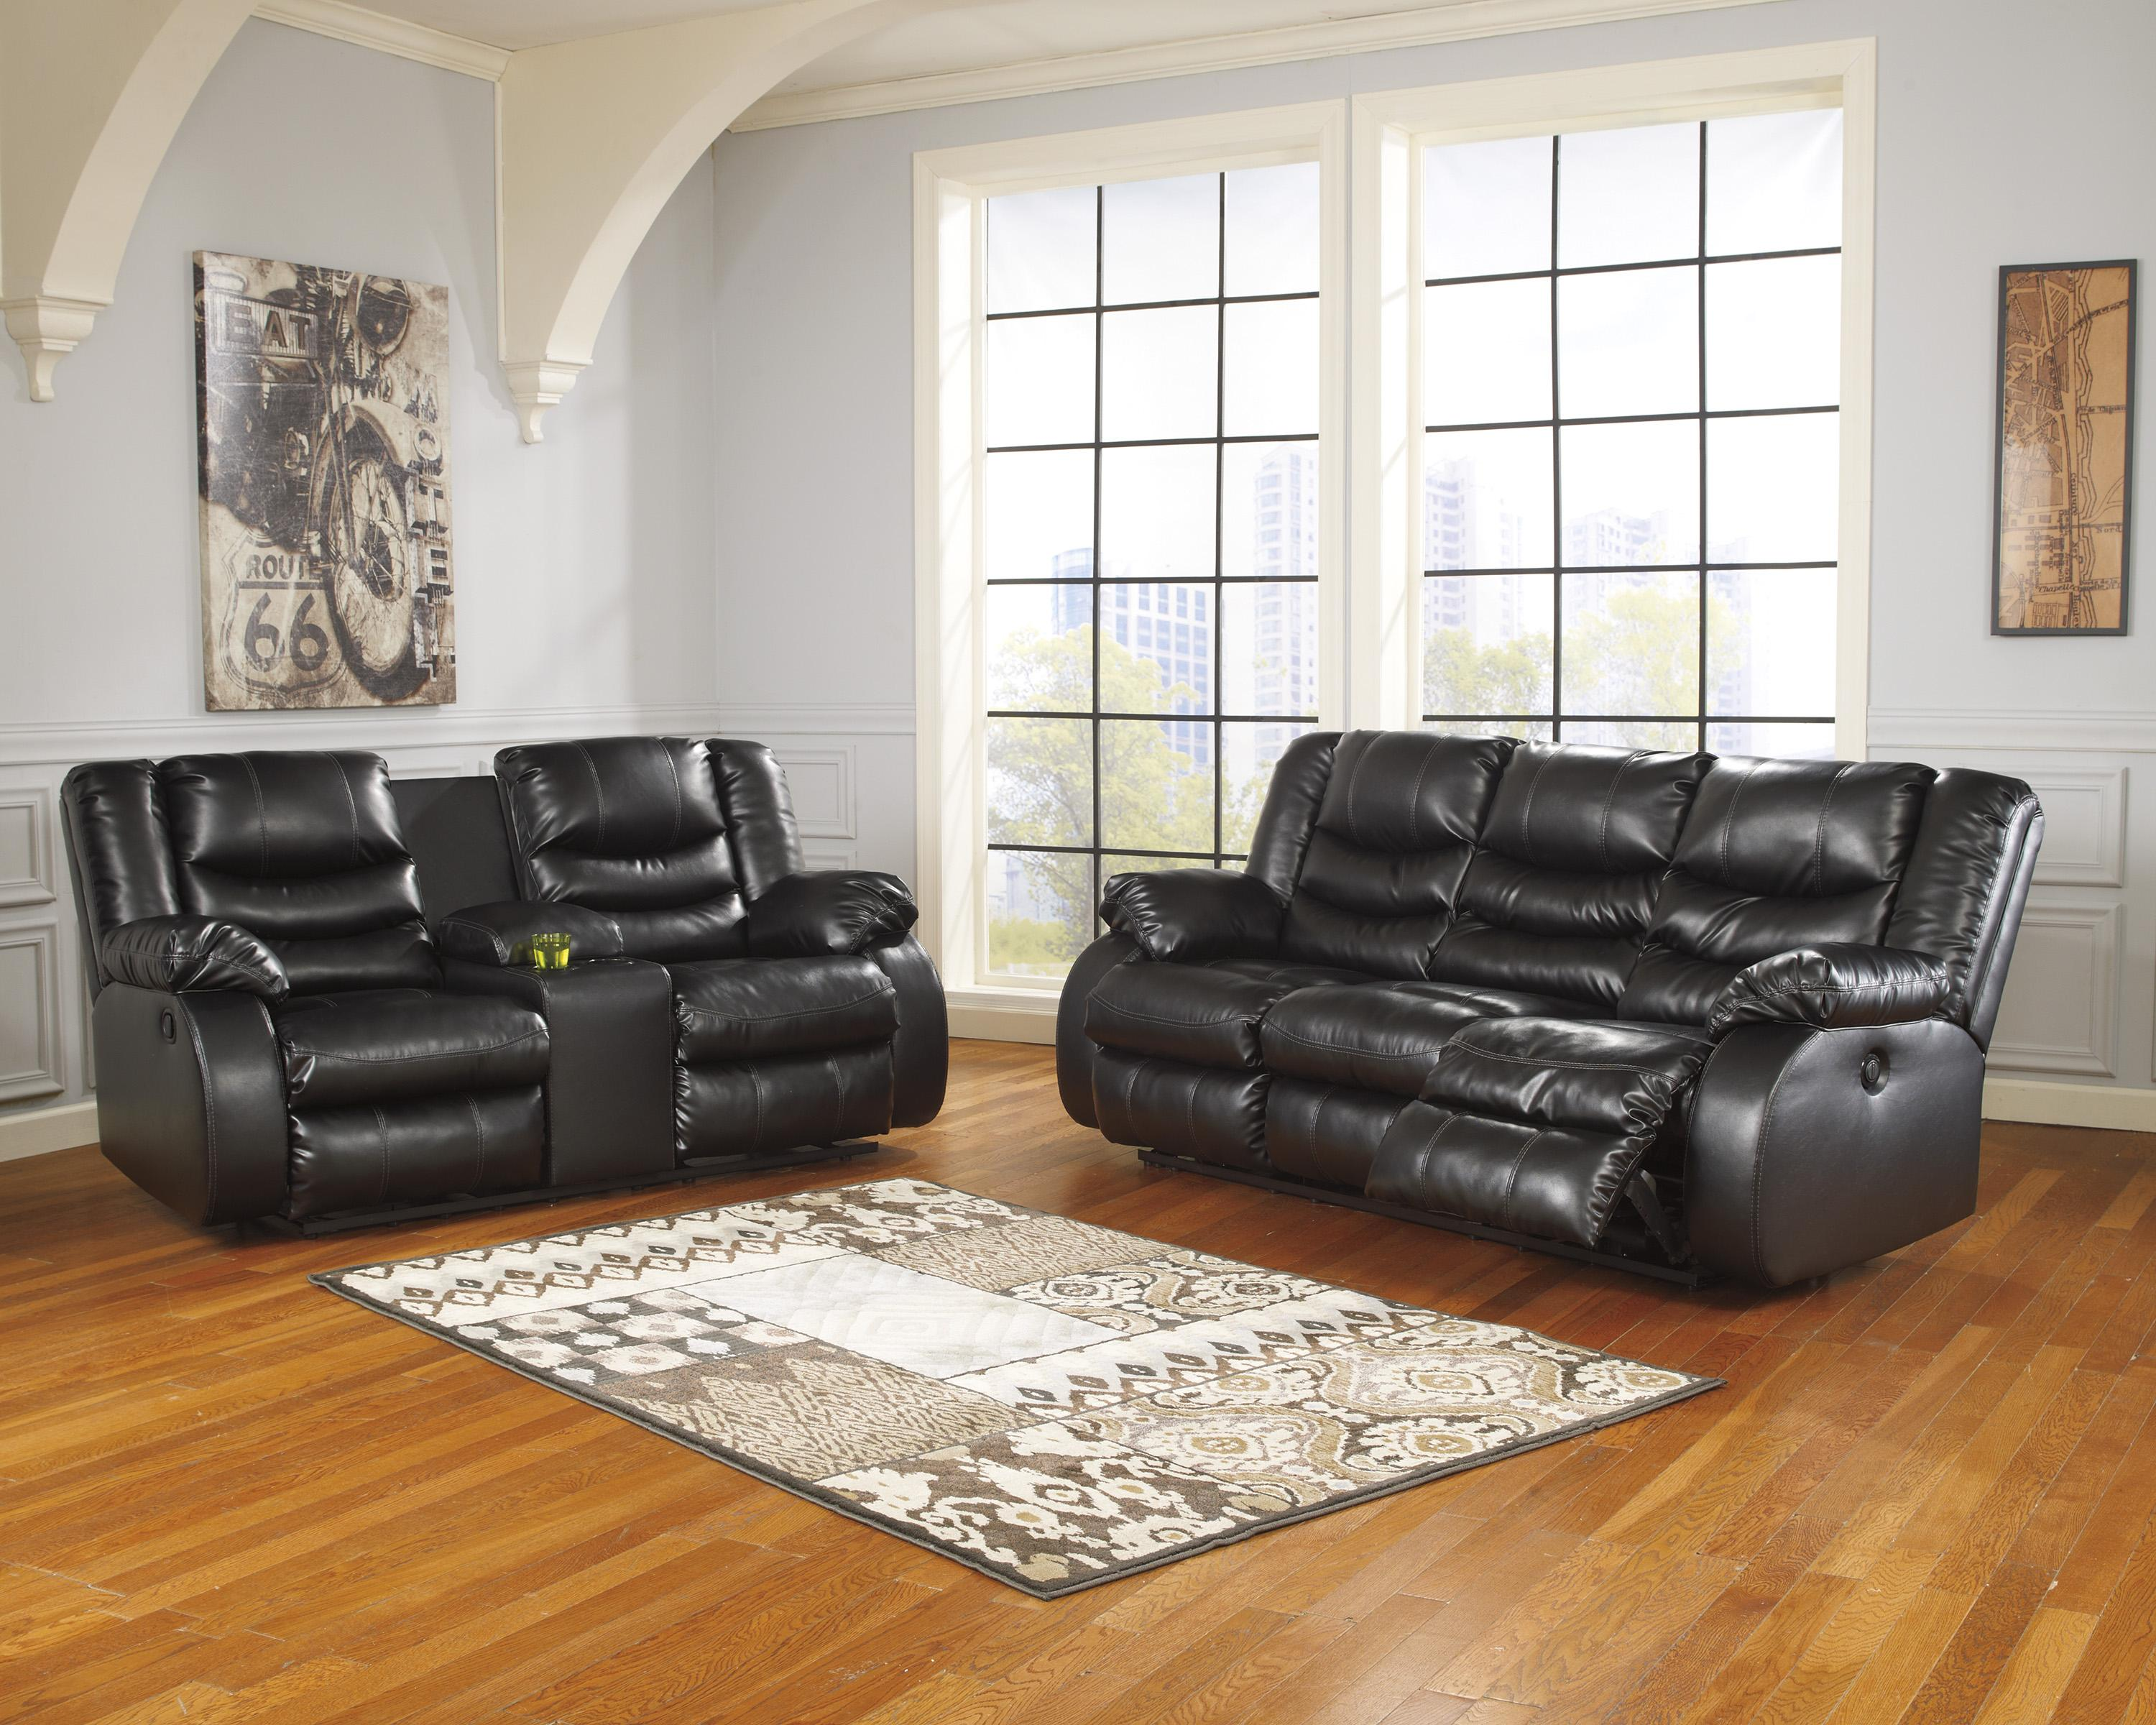 ashley leather sofas and loveseats latest sofa set designs images benchcraft by linebacker durablend black reclining living room group